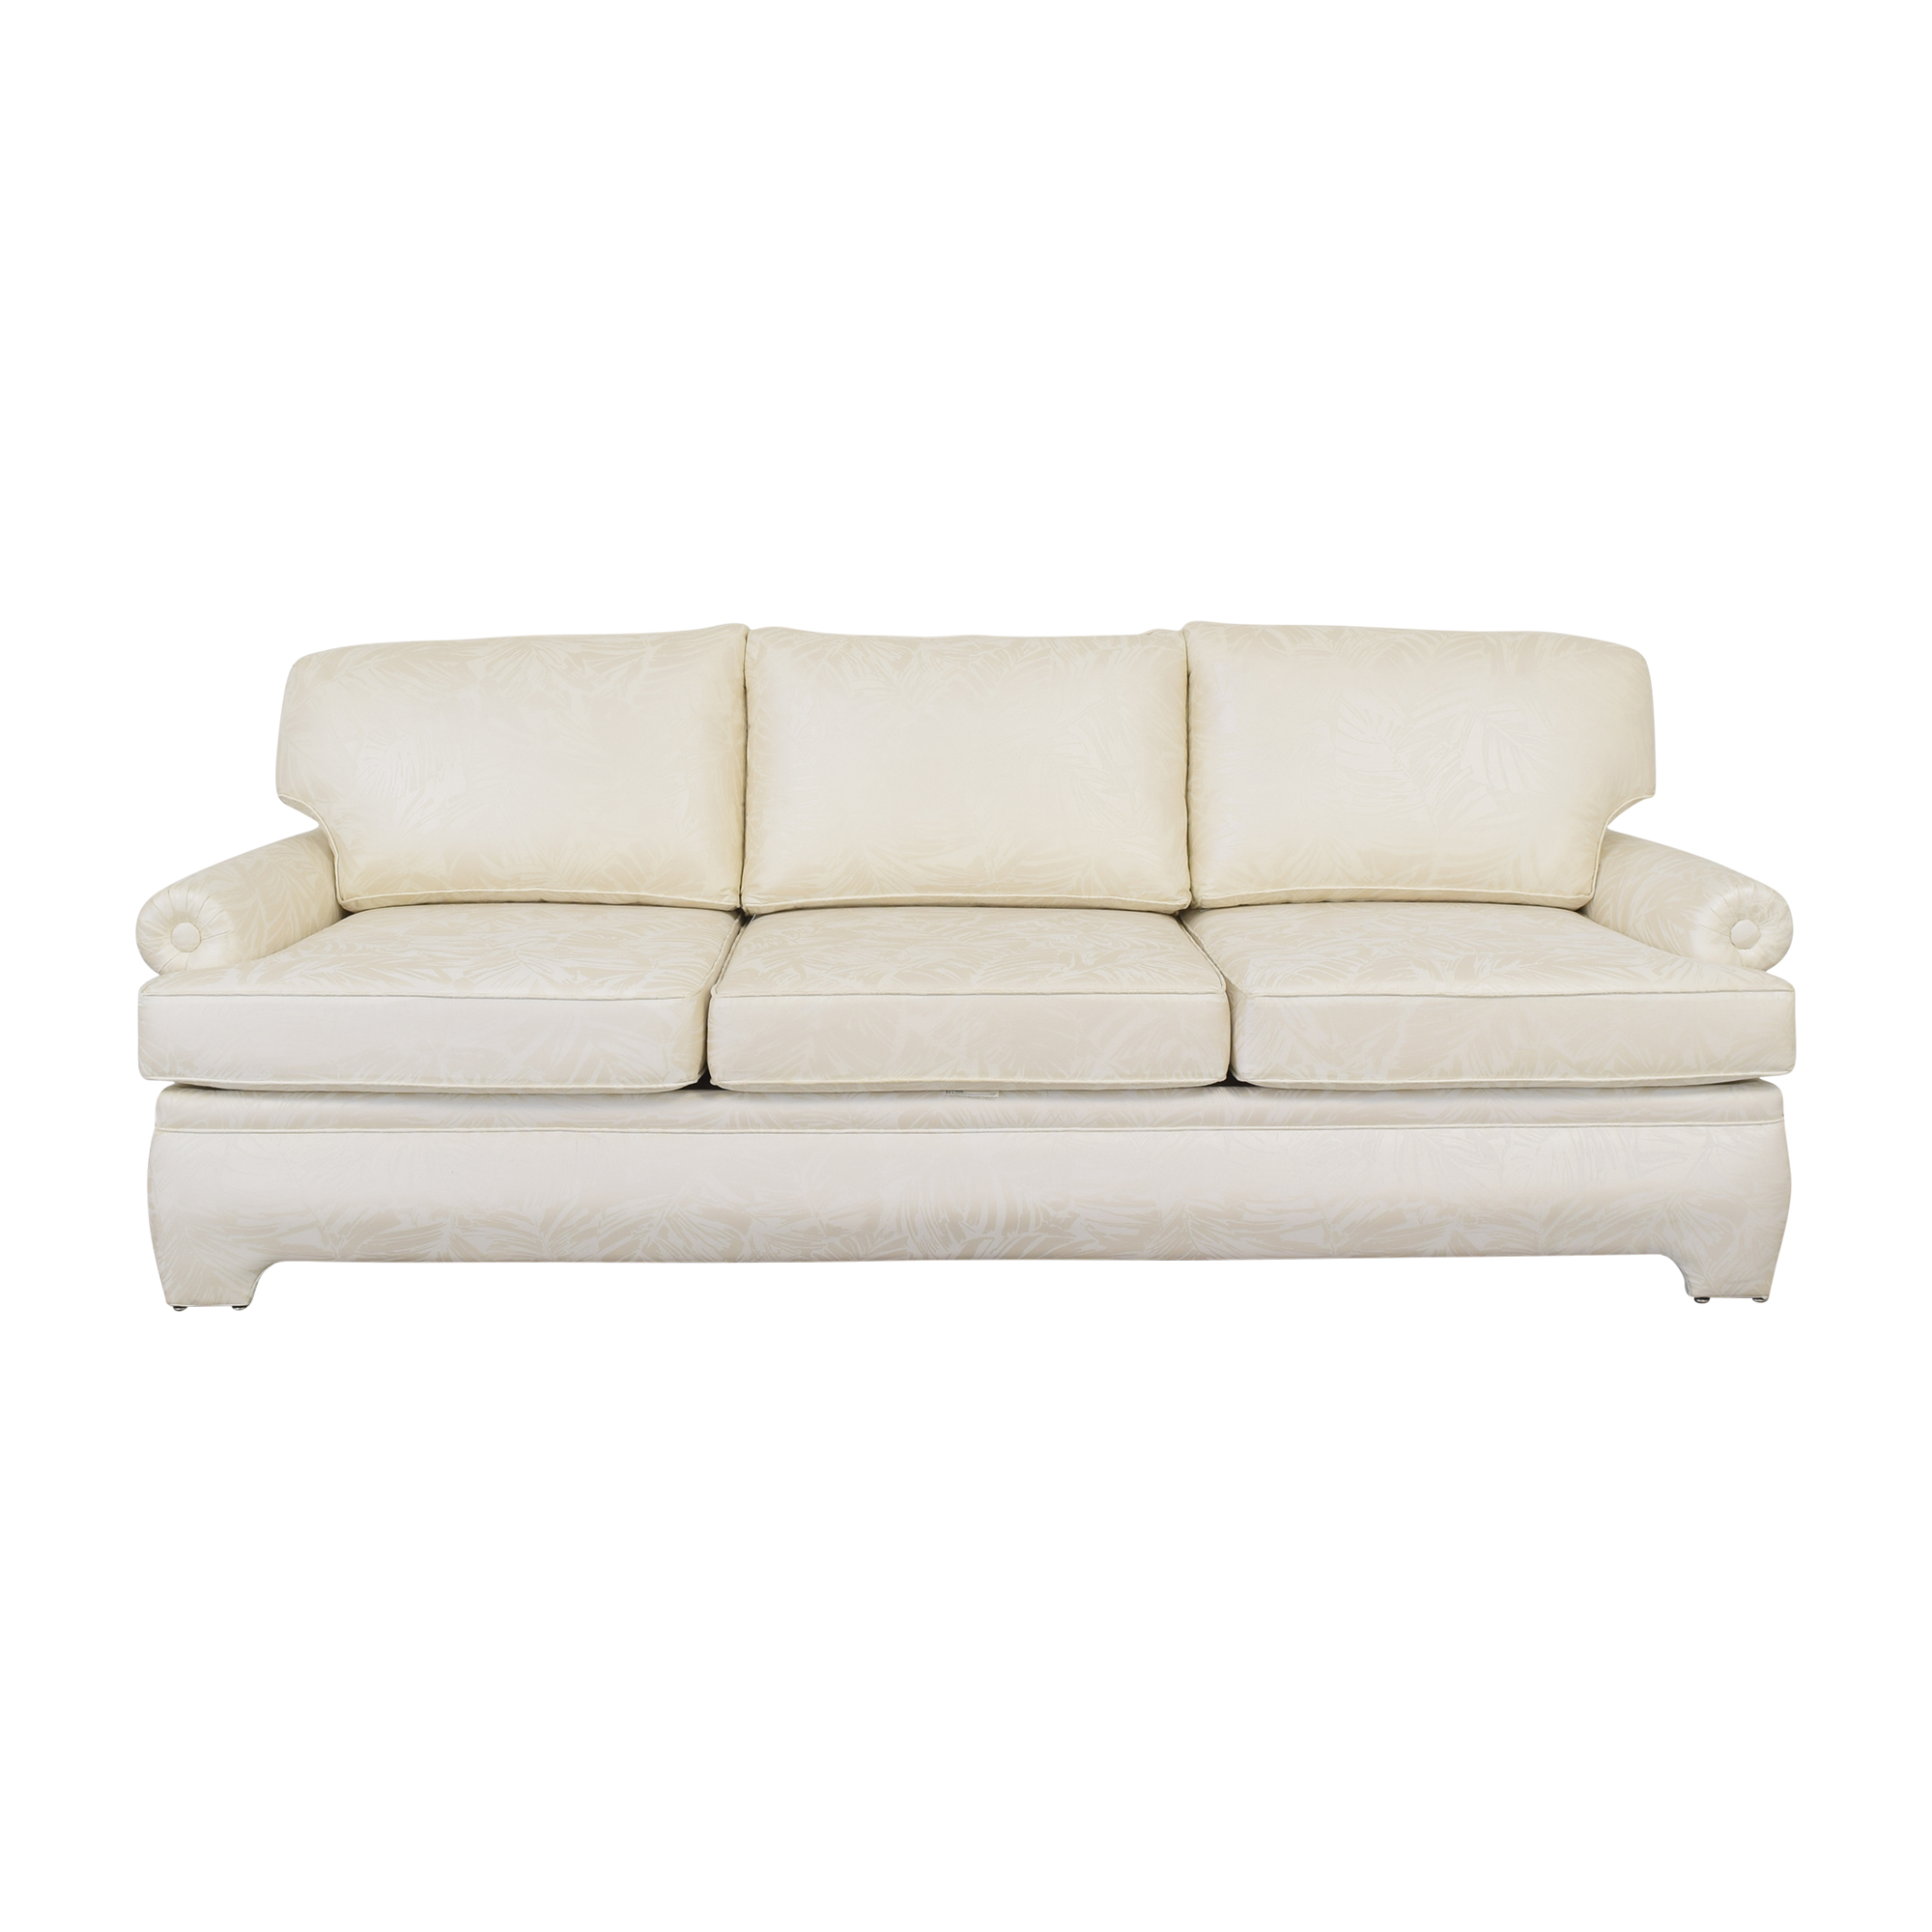 The Sofa Factory The Sofa Factory Three Cushion Sofa pa